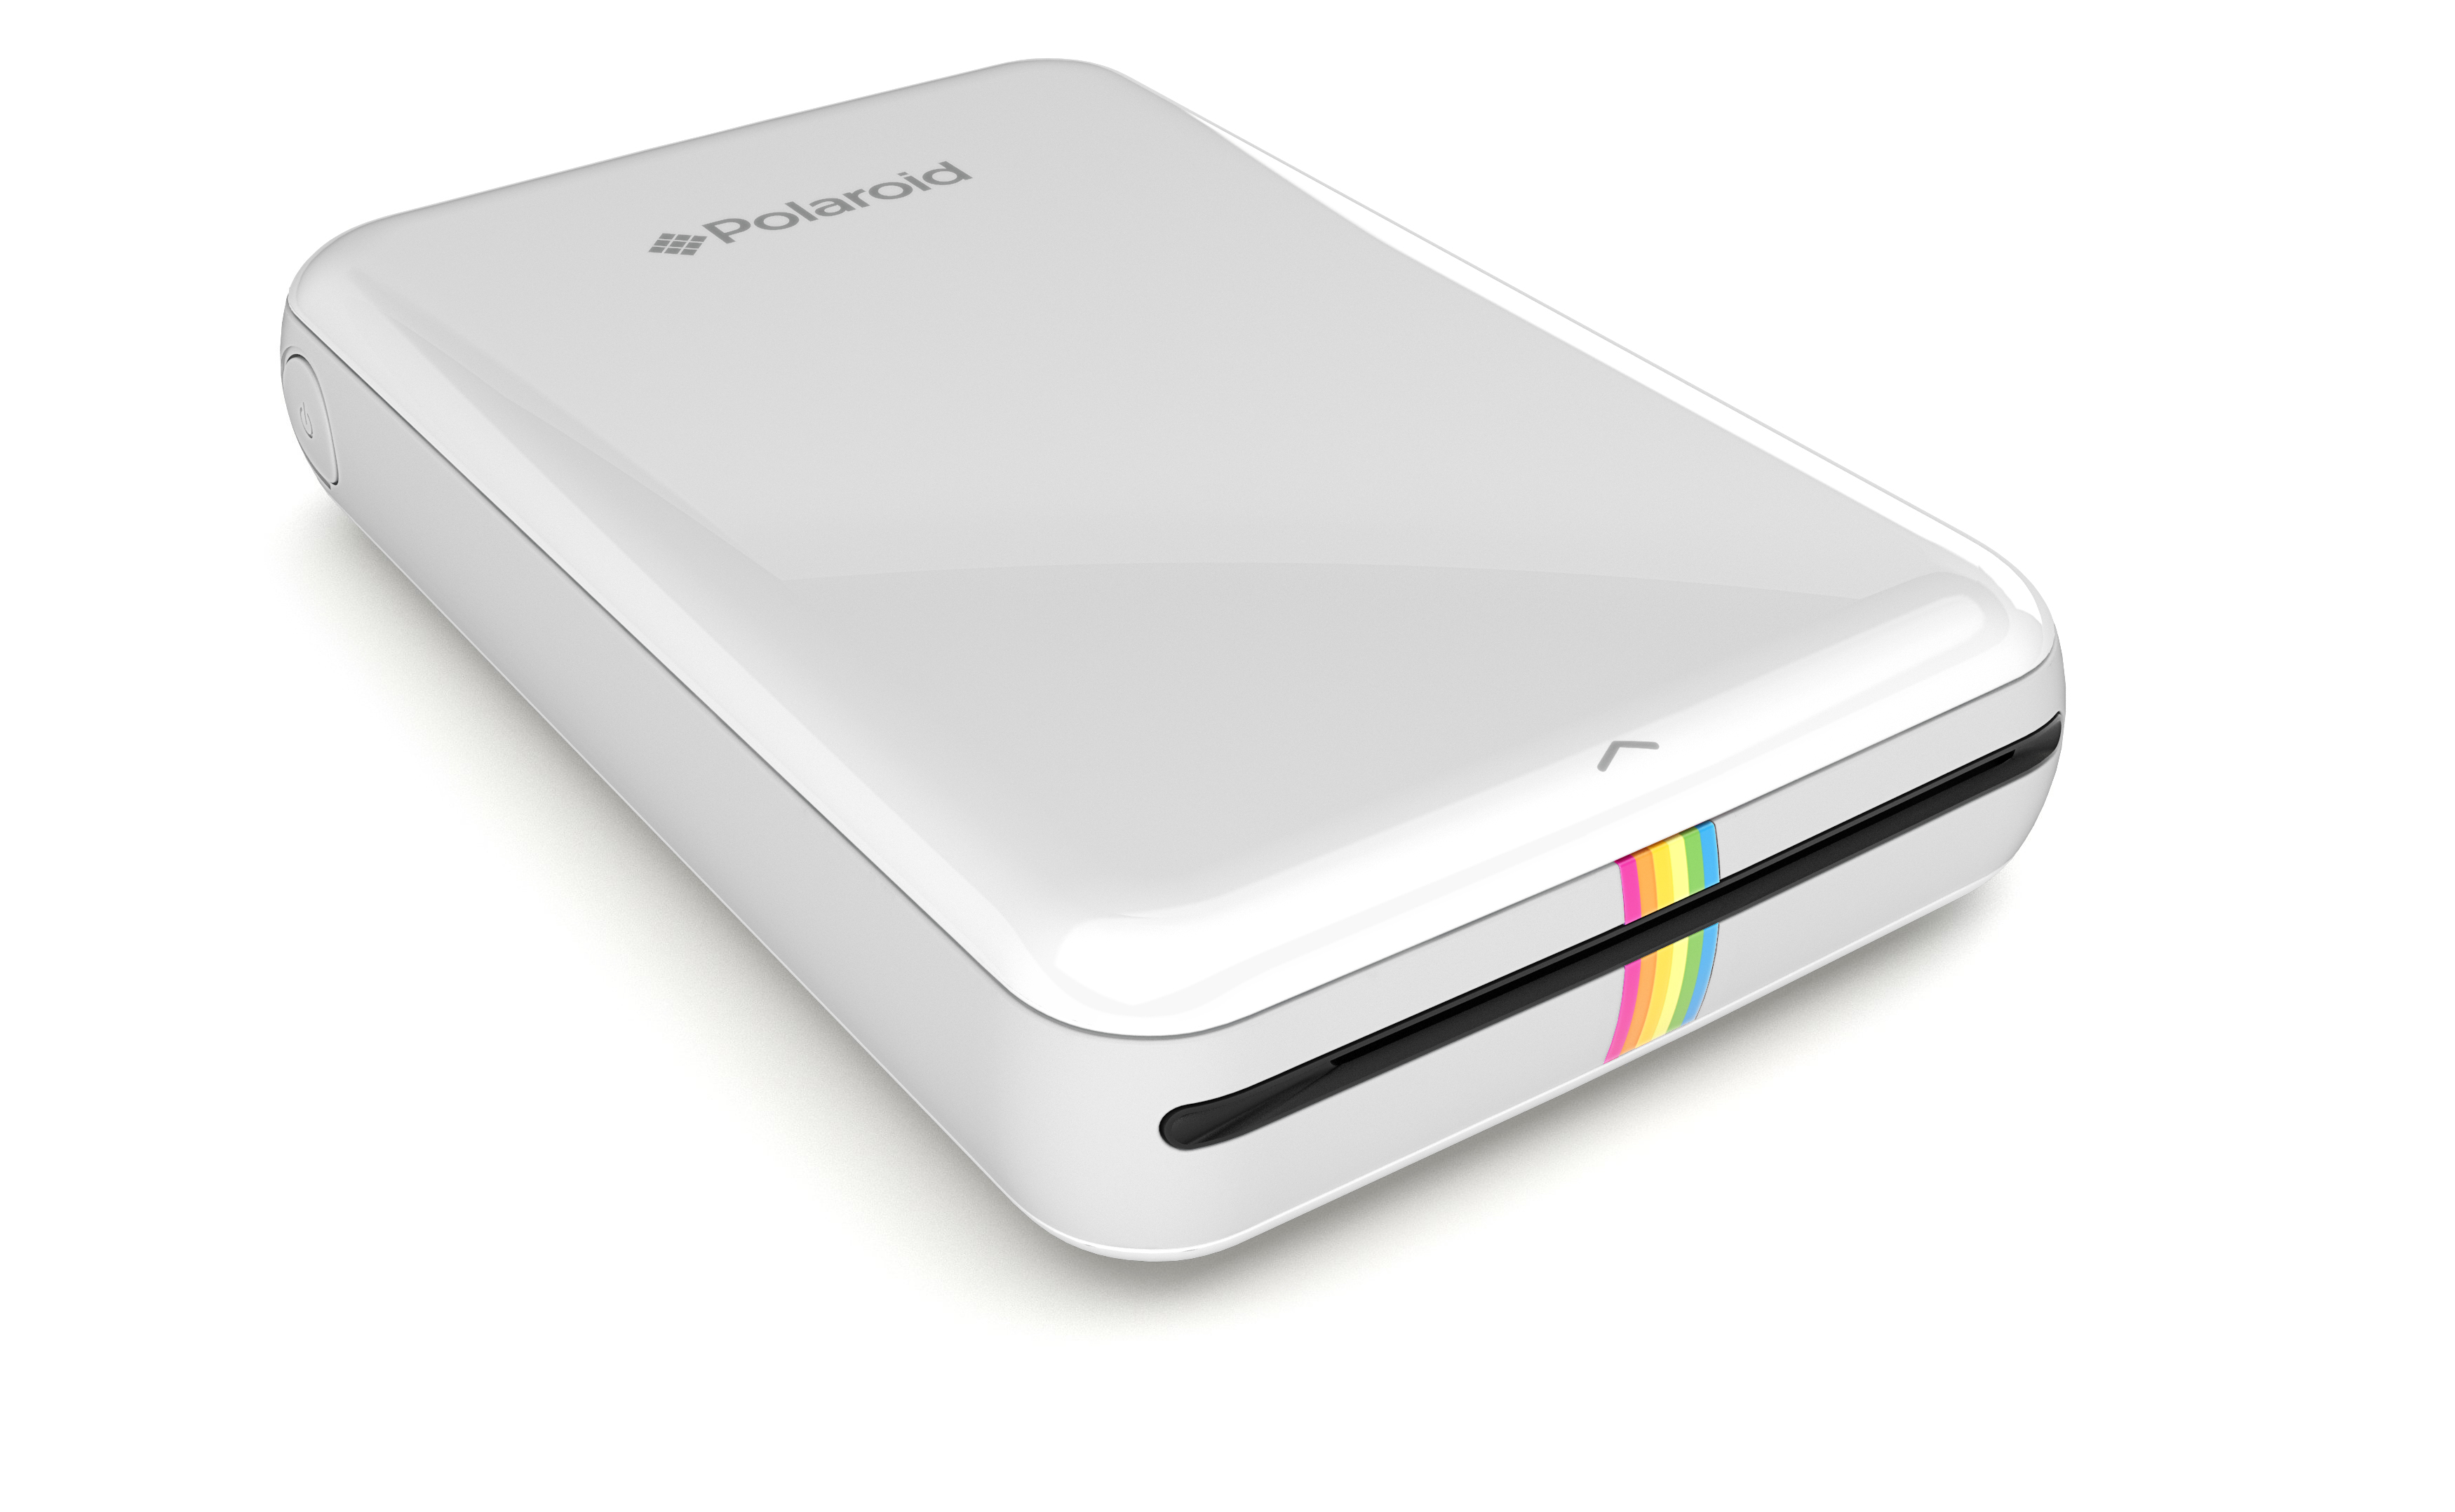 Camera Printing From Android Phone print any digital image instantly with the polaroid zip mobile printer download